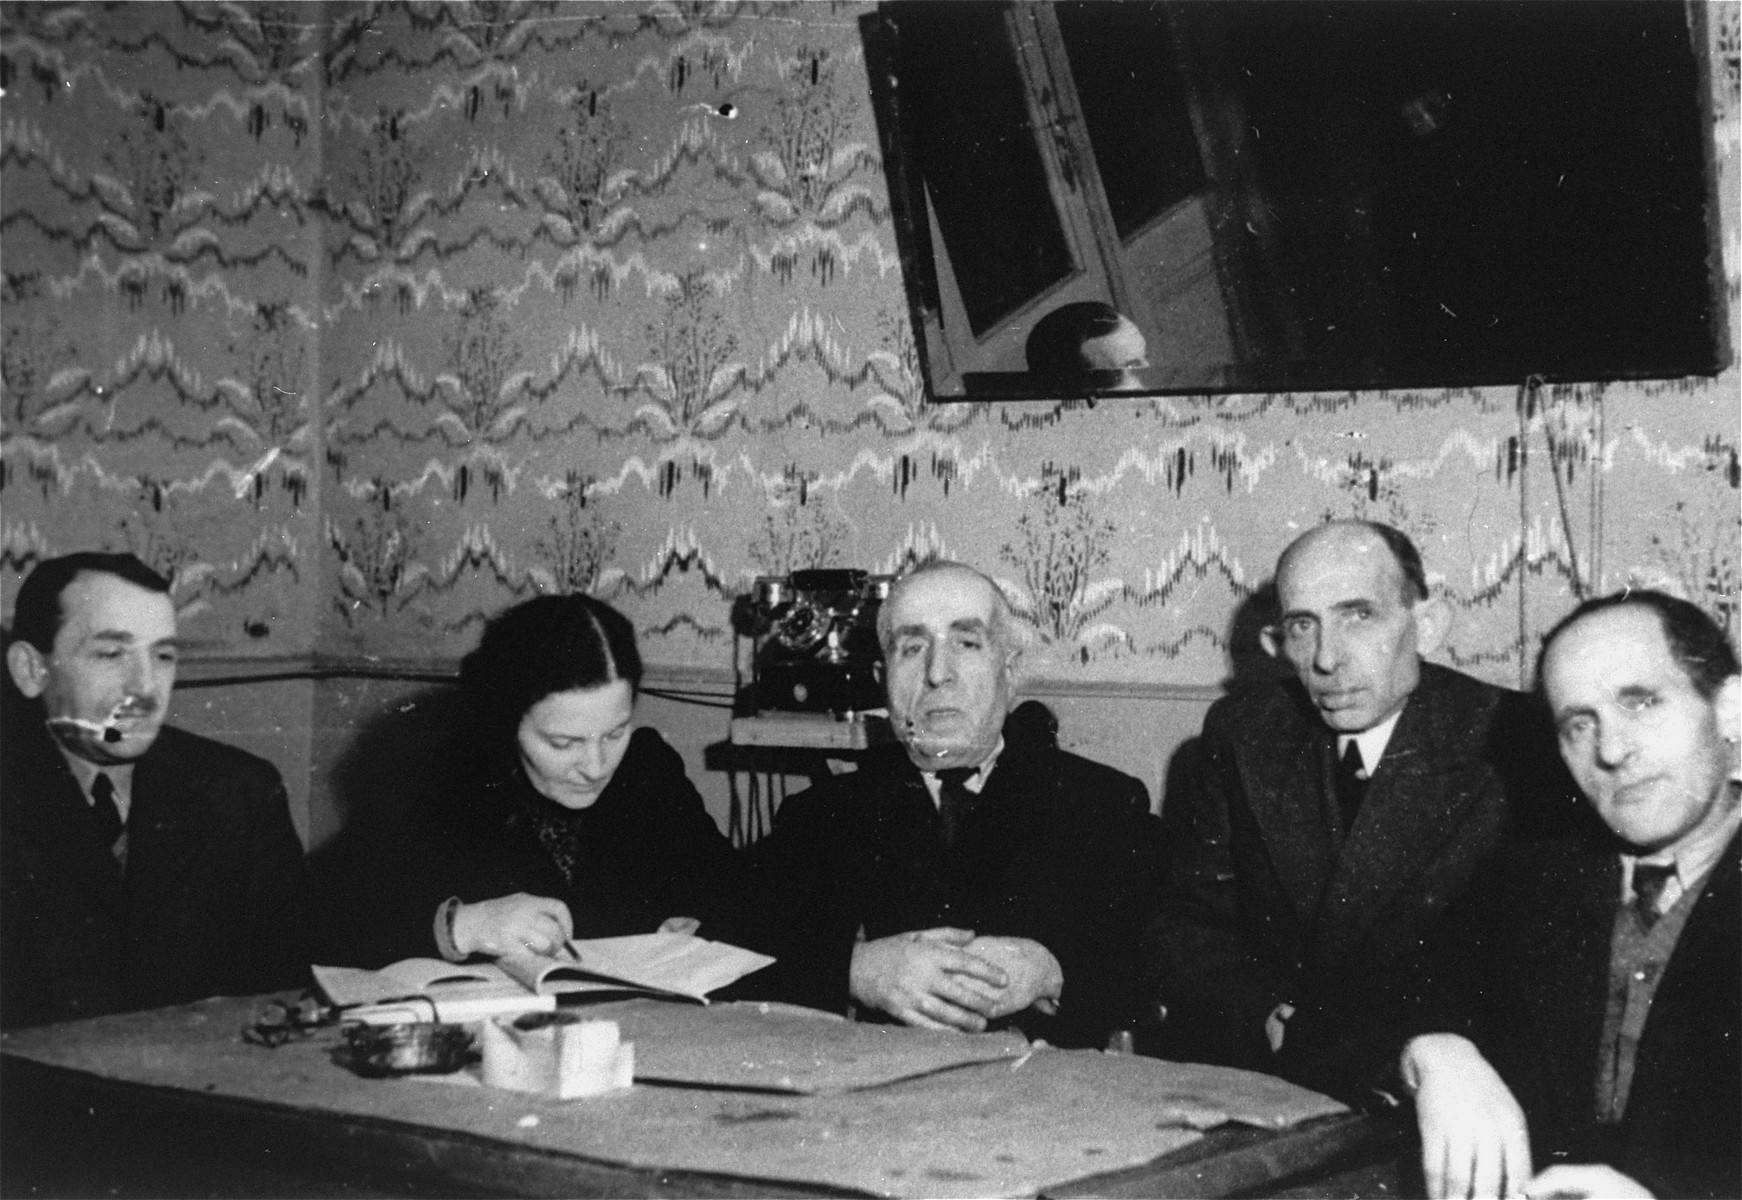 Members of the ghetto administration sit around a table in the office of the Judenrat in the Kielce ghetto.  This photo was one the images included in an official album prepared by the Judenrat of the Kielce ghetto in 1942.